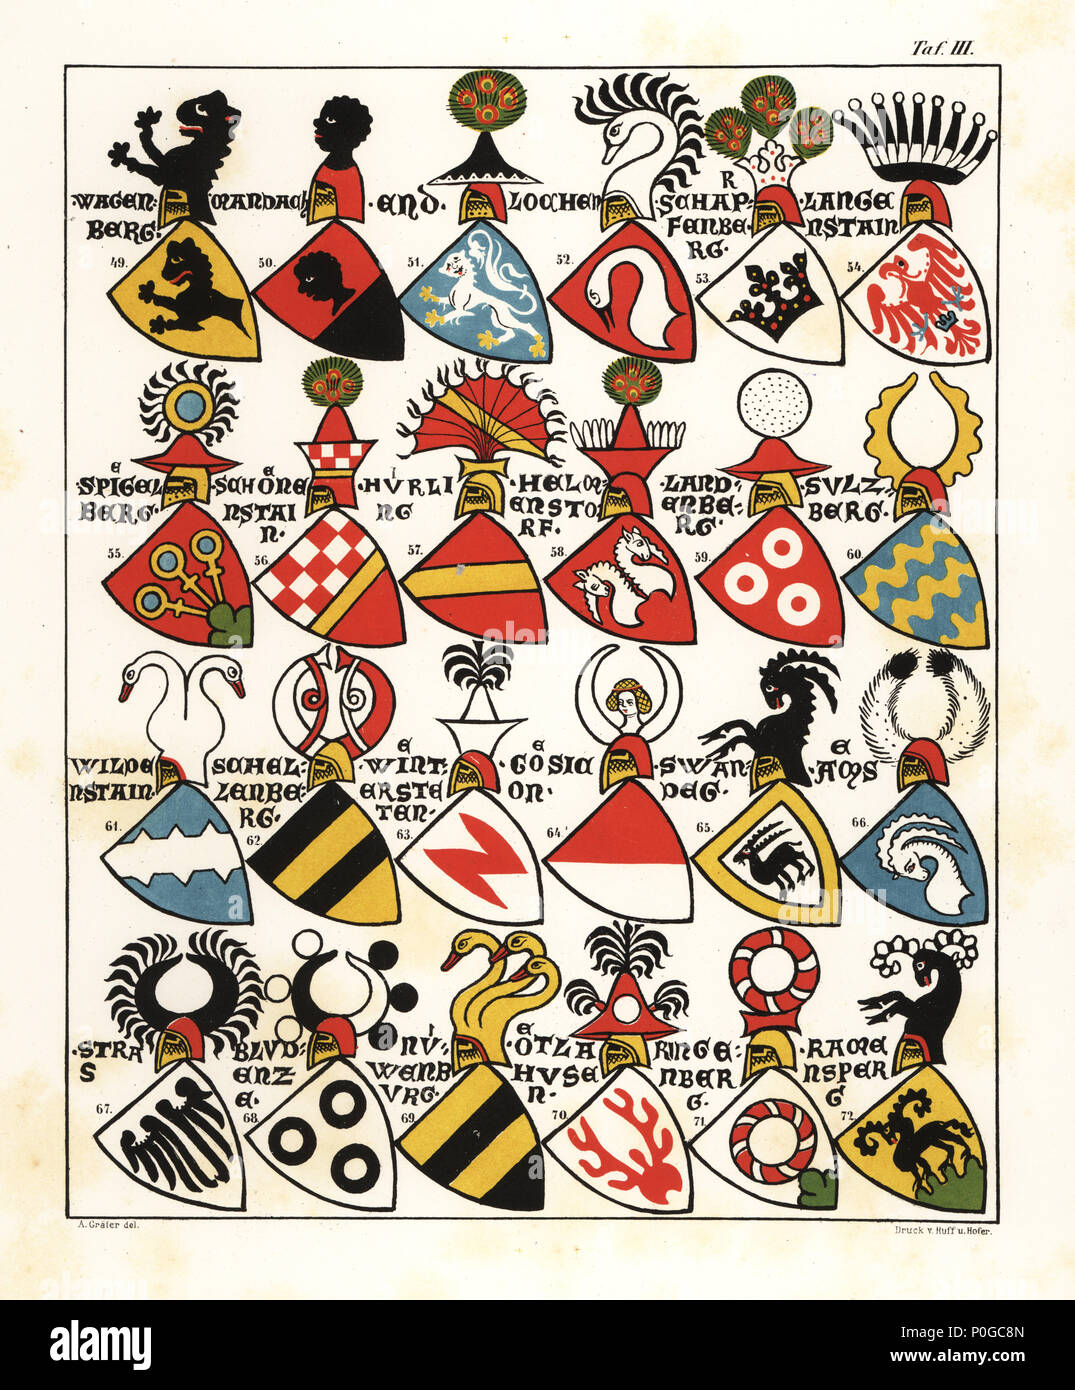 Swiss coats of arms, c. 1340. Chromolithograph by A. Graeter from Die Wappenrolle von Zurich, The Zurich Armorial, Antiquarische Gesellschaft in Zurich, 1860. Reprint of a 14th century manuscript roll of arms showing the heraldry of the Holy Roman Empire with 559 coats of arms and 28 flags of bishoprics in Switzerland. - Stock Image